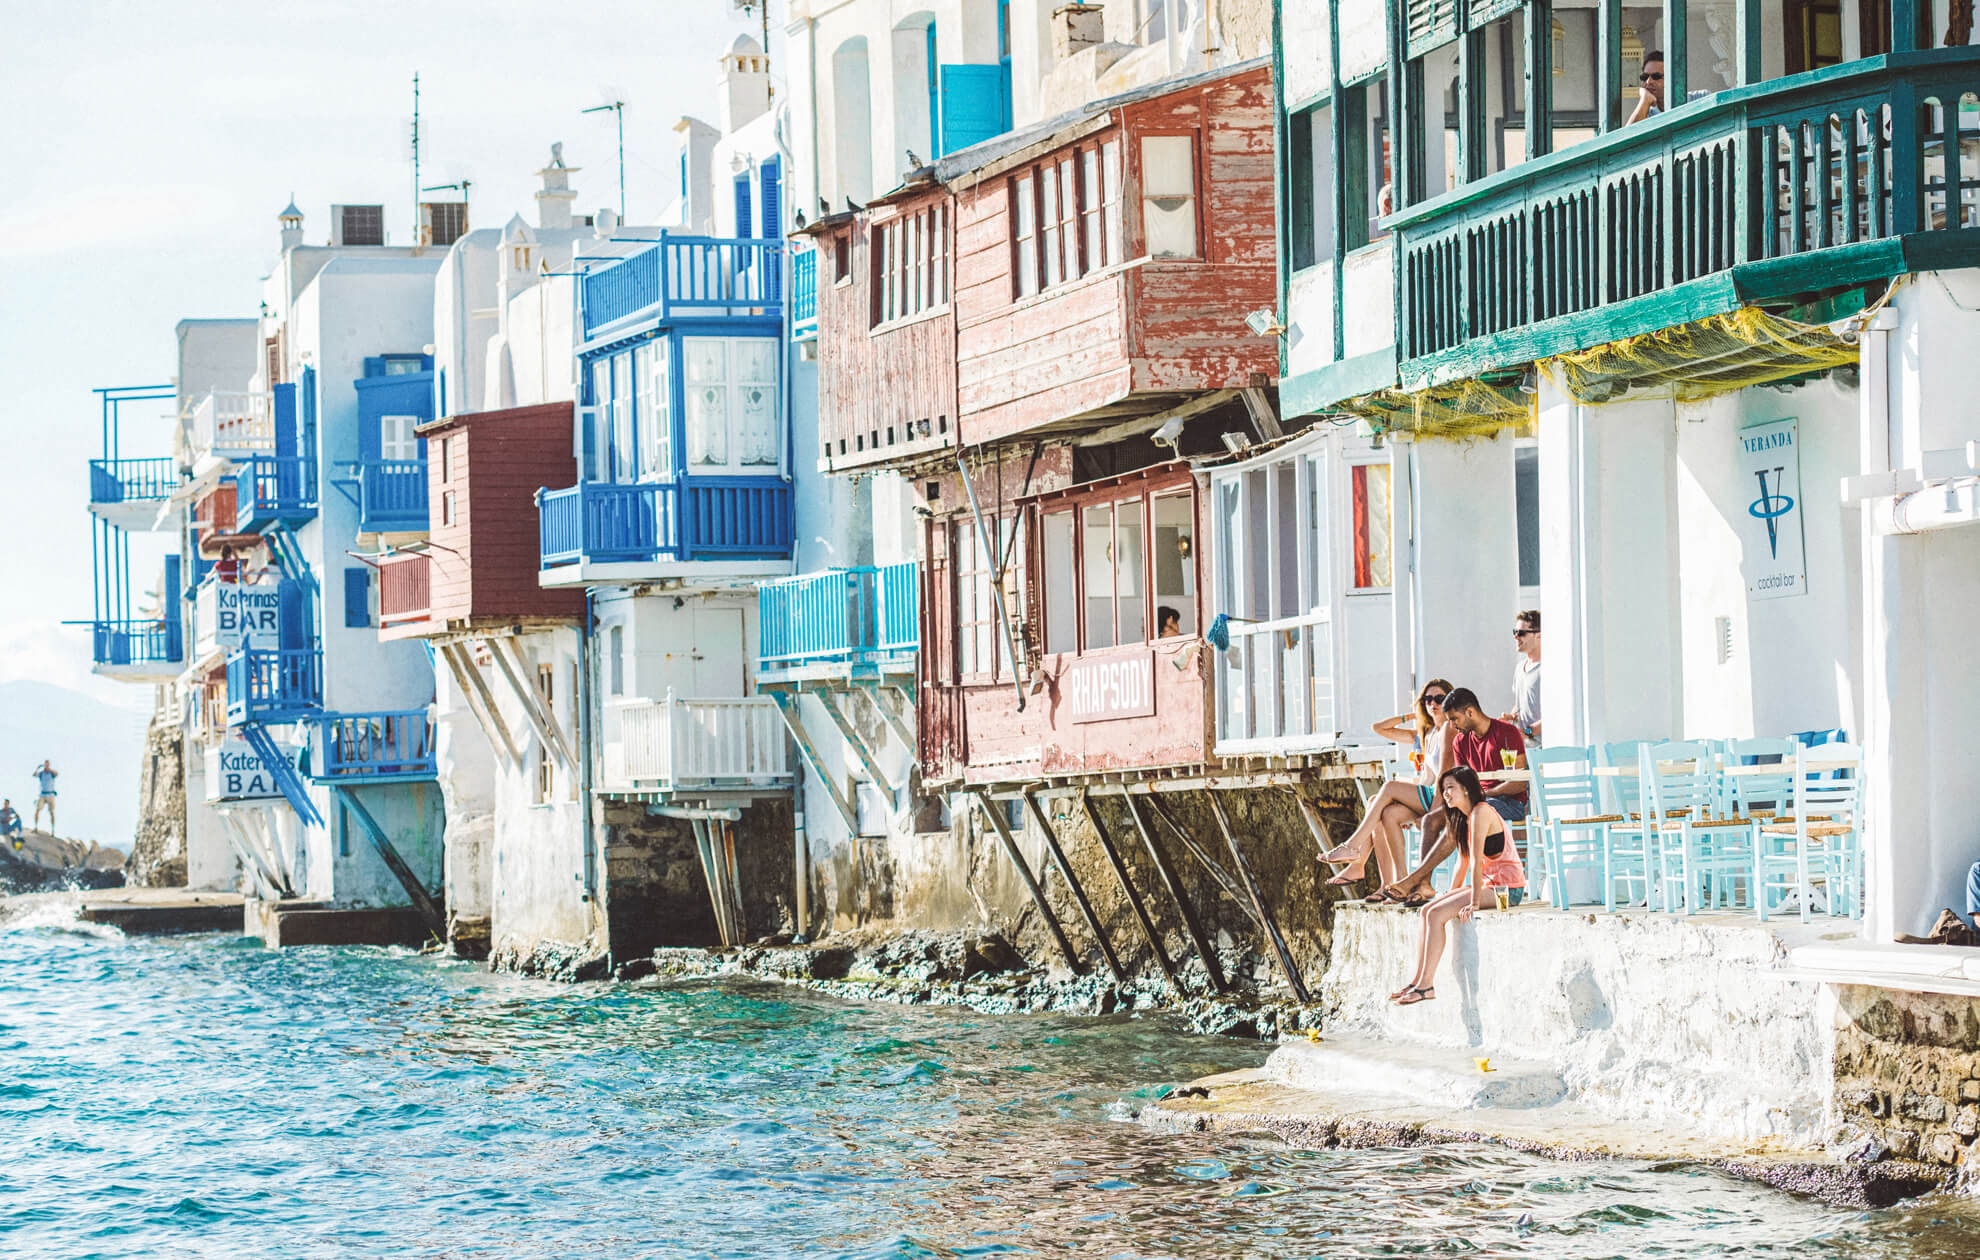 colourful houses overlooking water